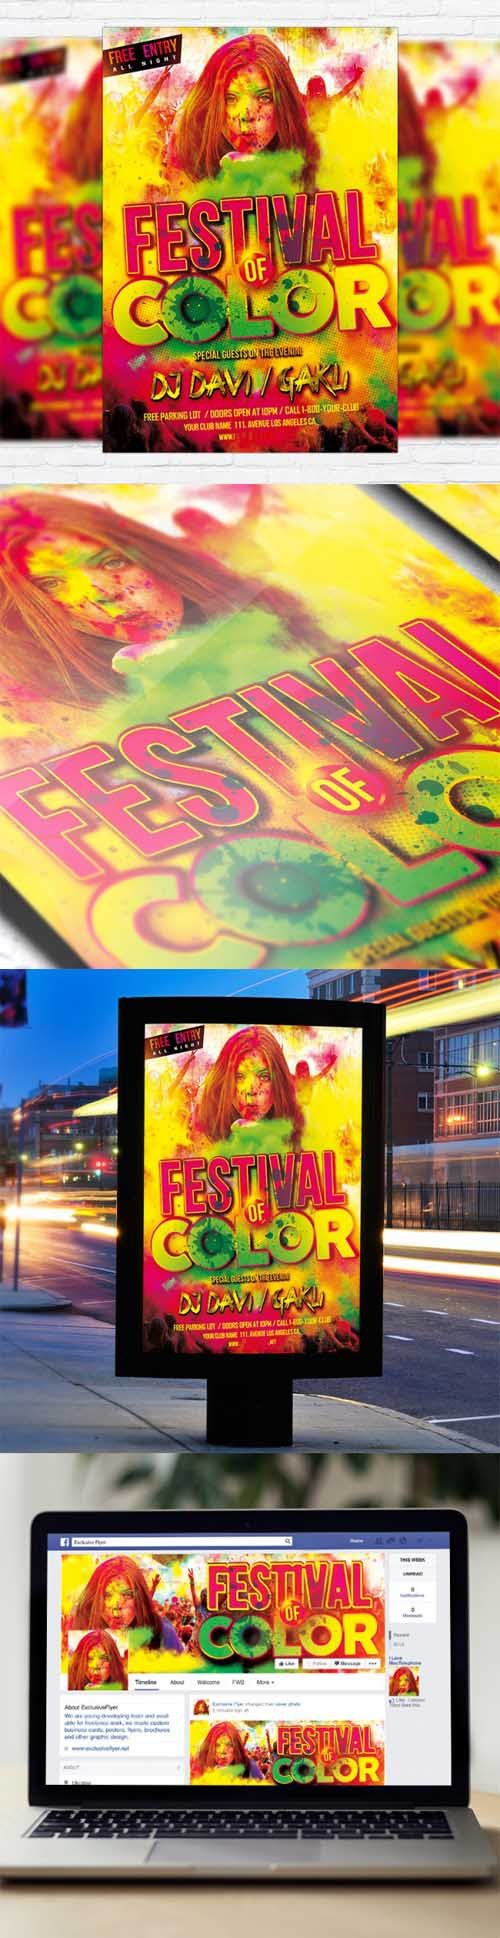 Flyer Template - Festival Of Color + Facebook Cover